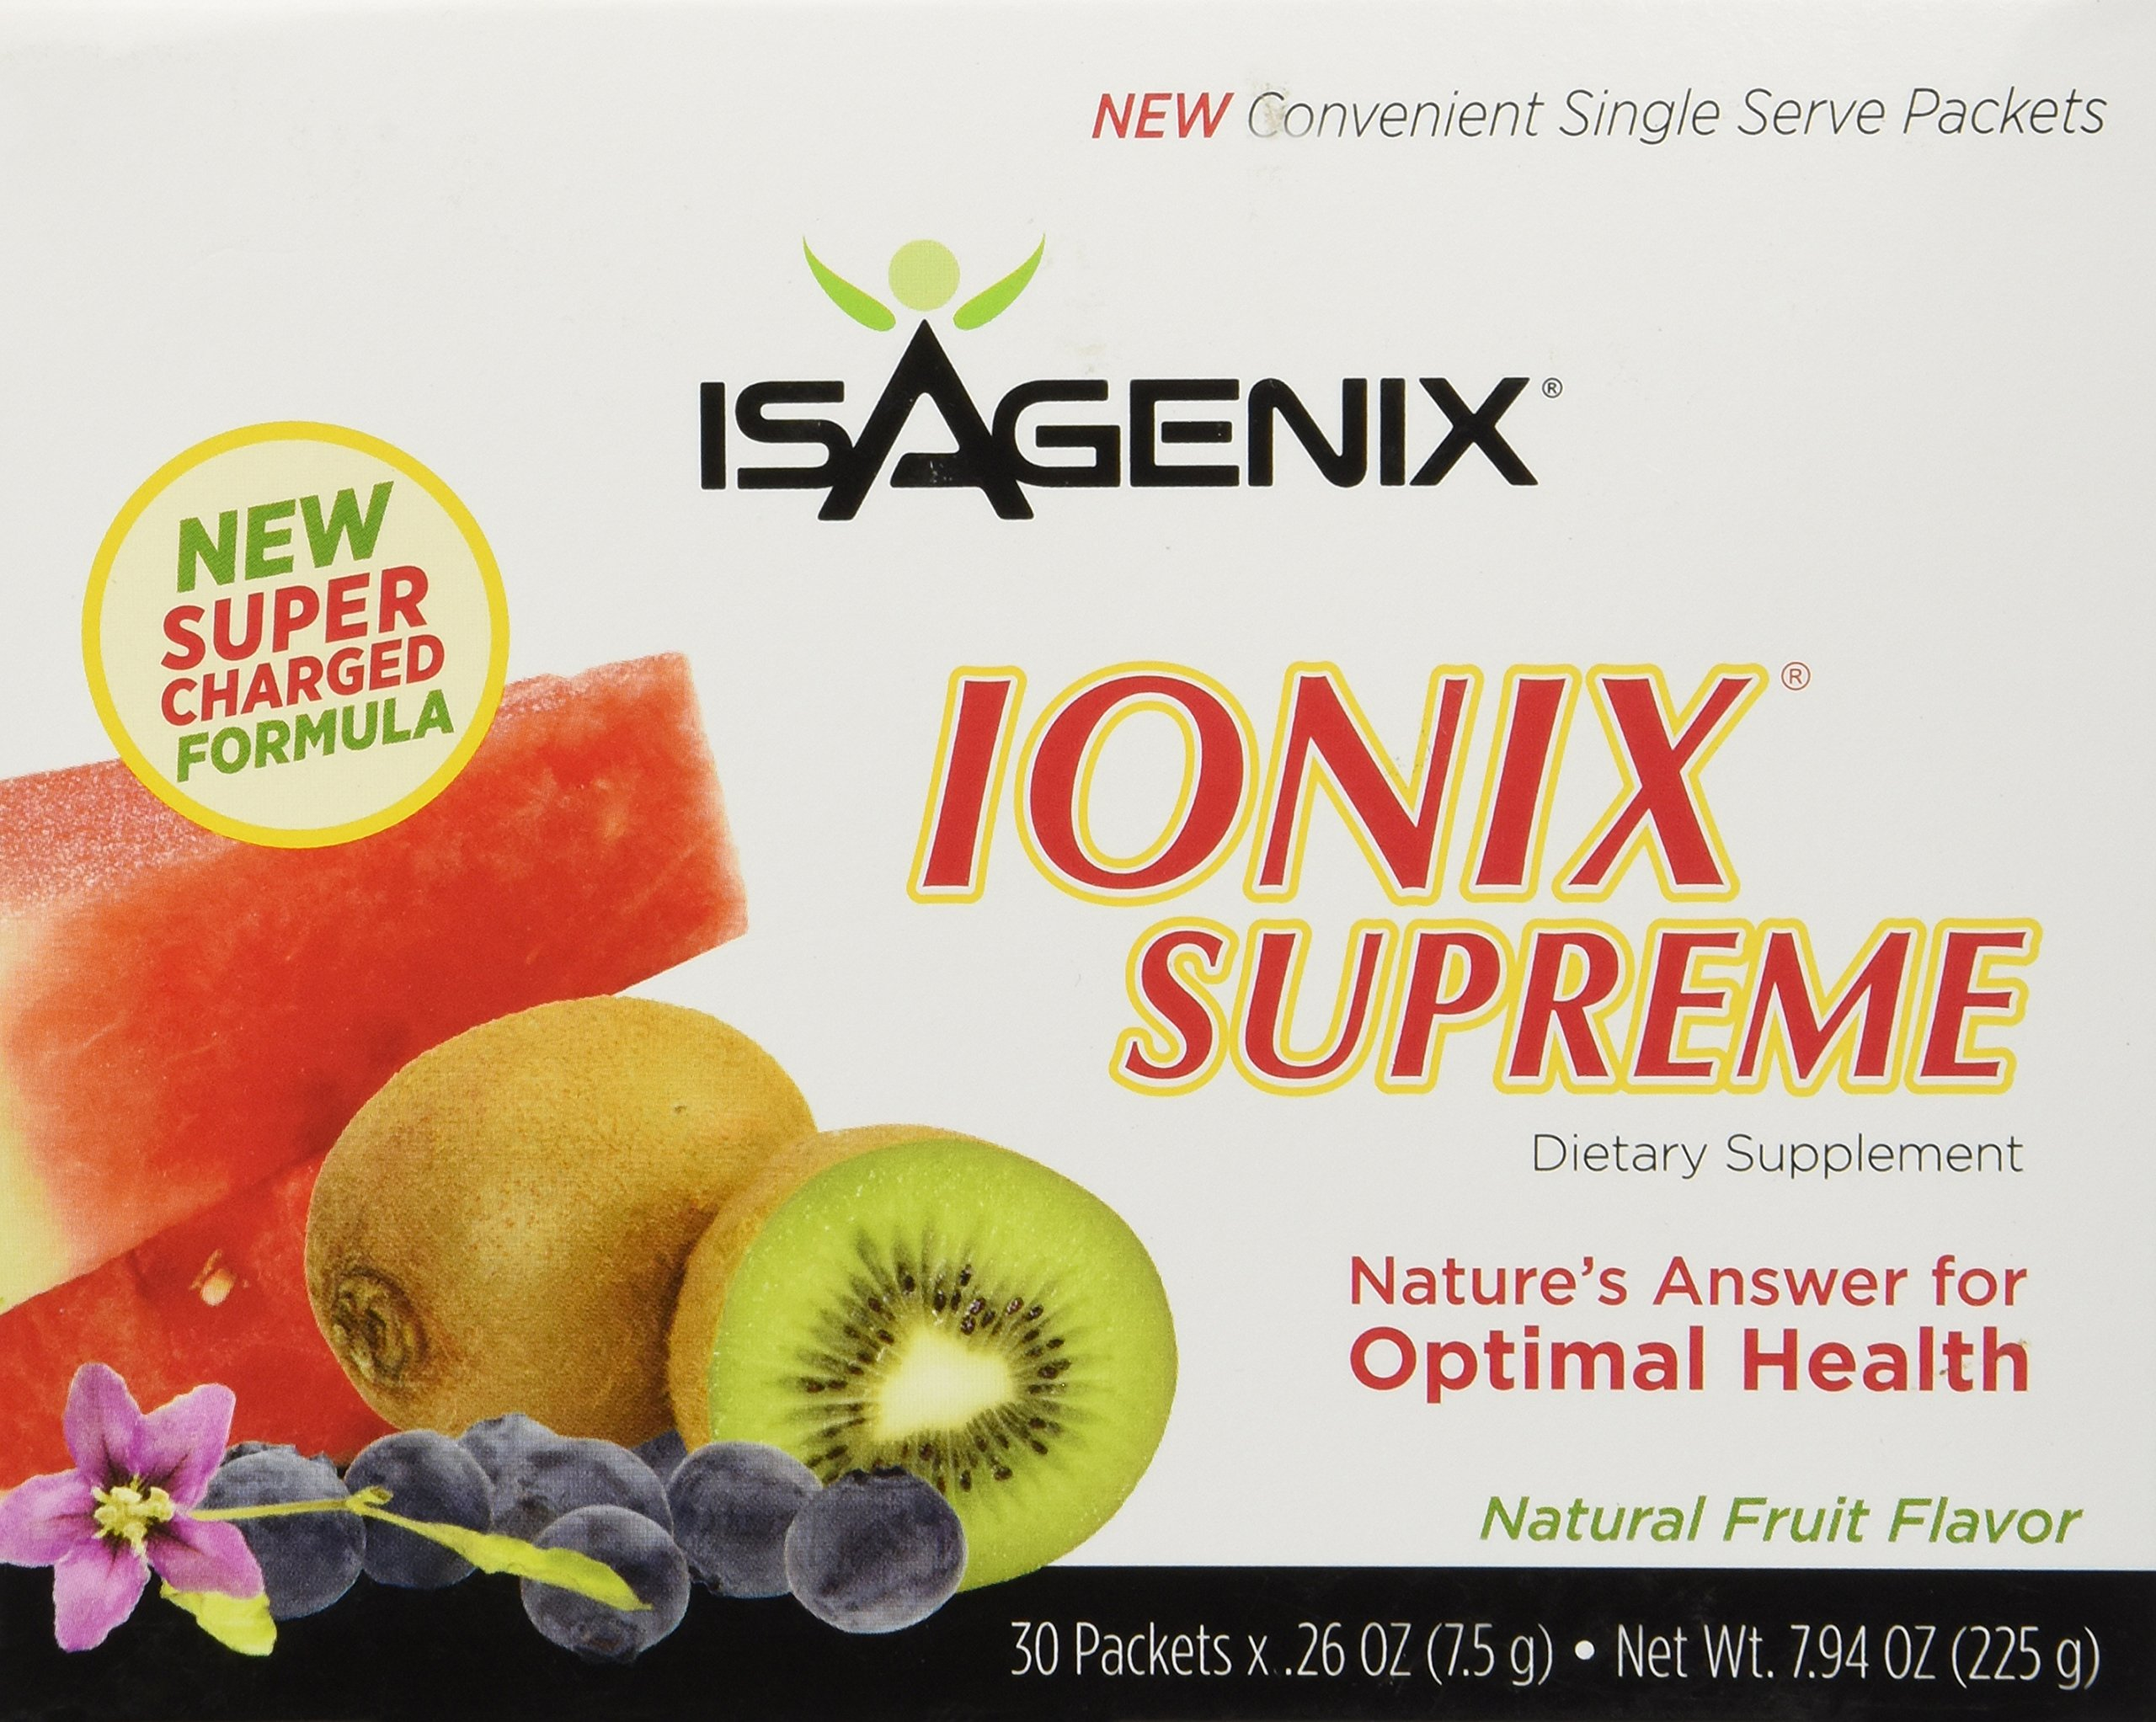 Isagenix Ionix Supreme Packets (30 Packets)